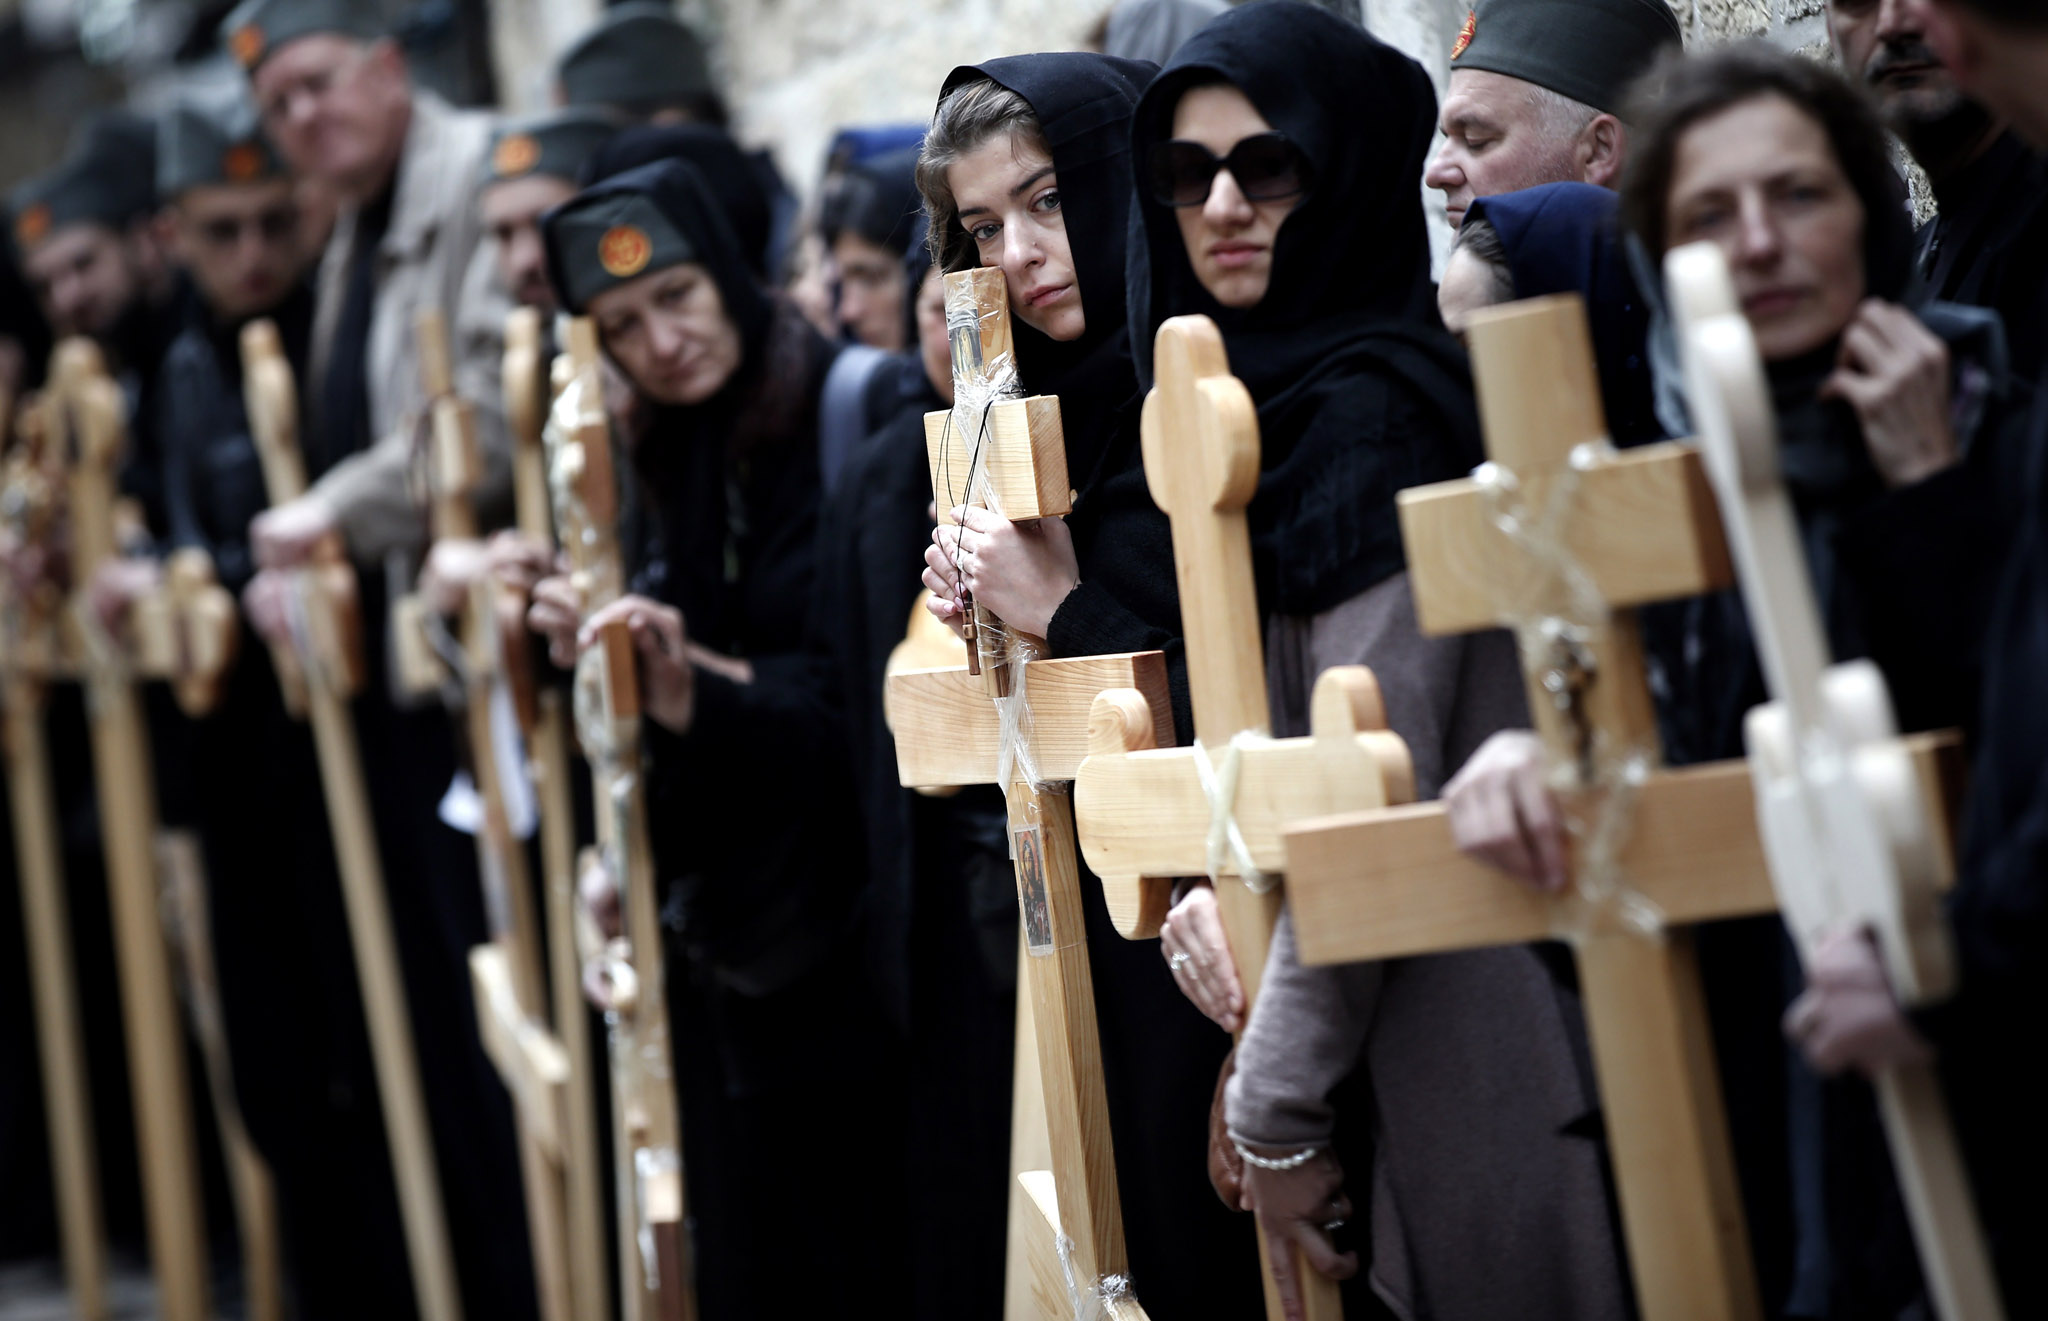 Serbian Orthodox Christian pilgrims pray as they carry wooden crosses, along the Via Dolorosa (Way of Suffering), during the Orthodox Good Friday procession in Jerusalem's old city.